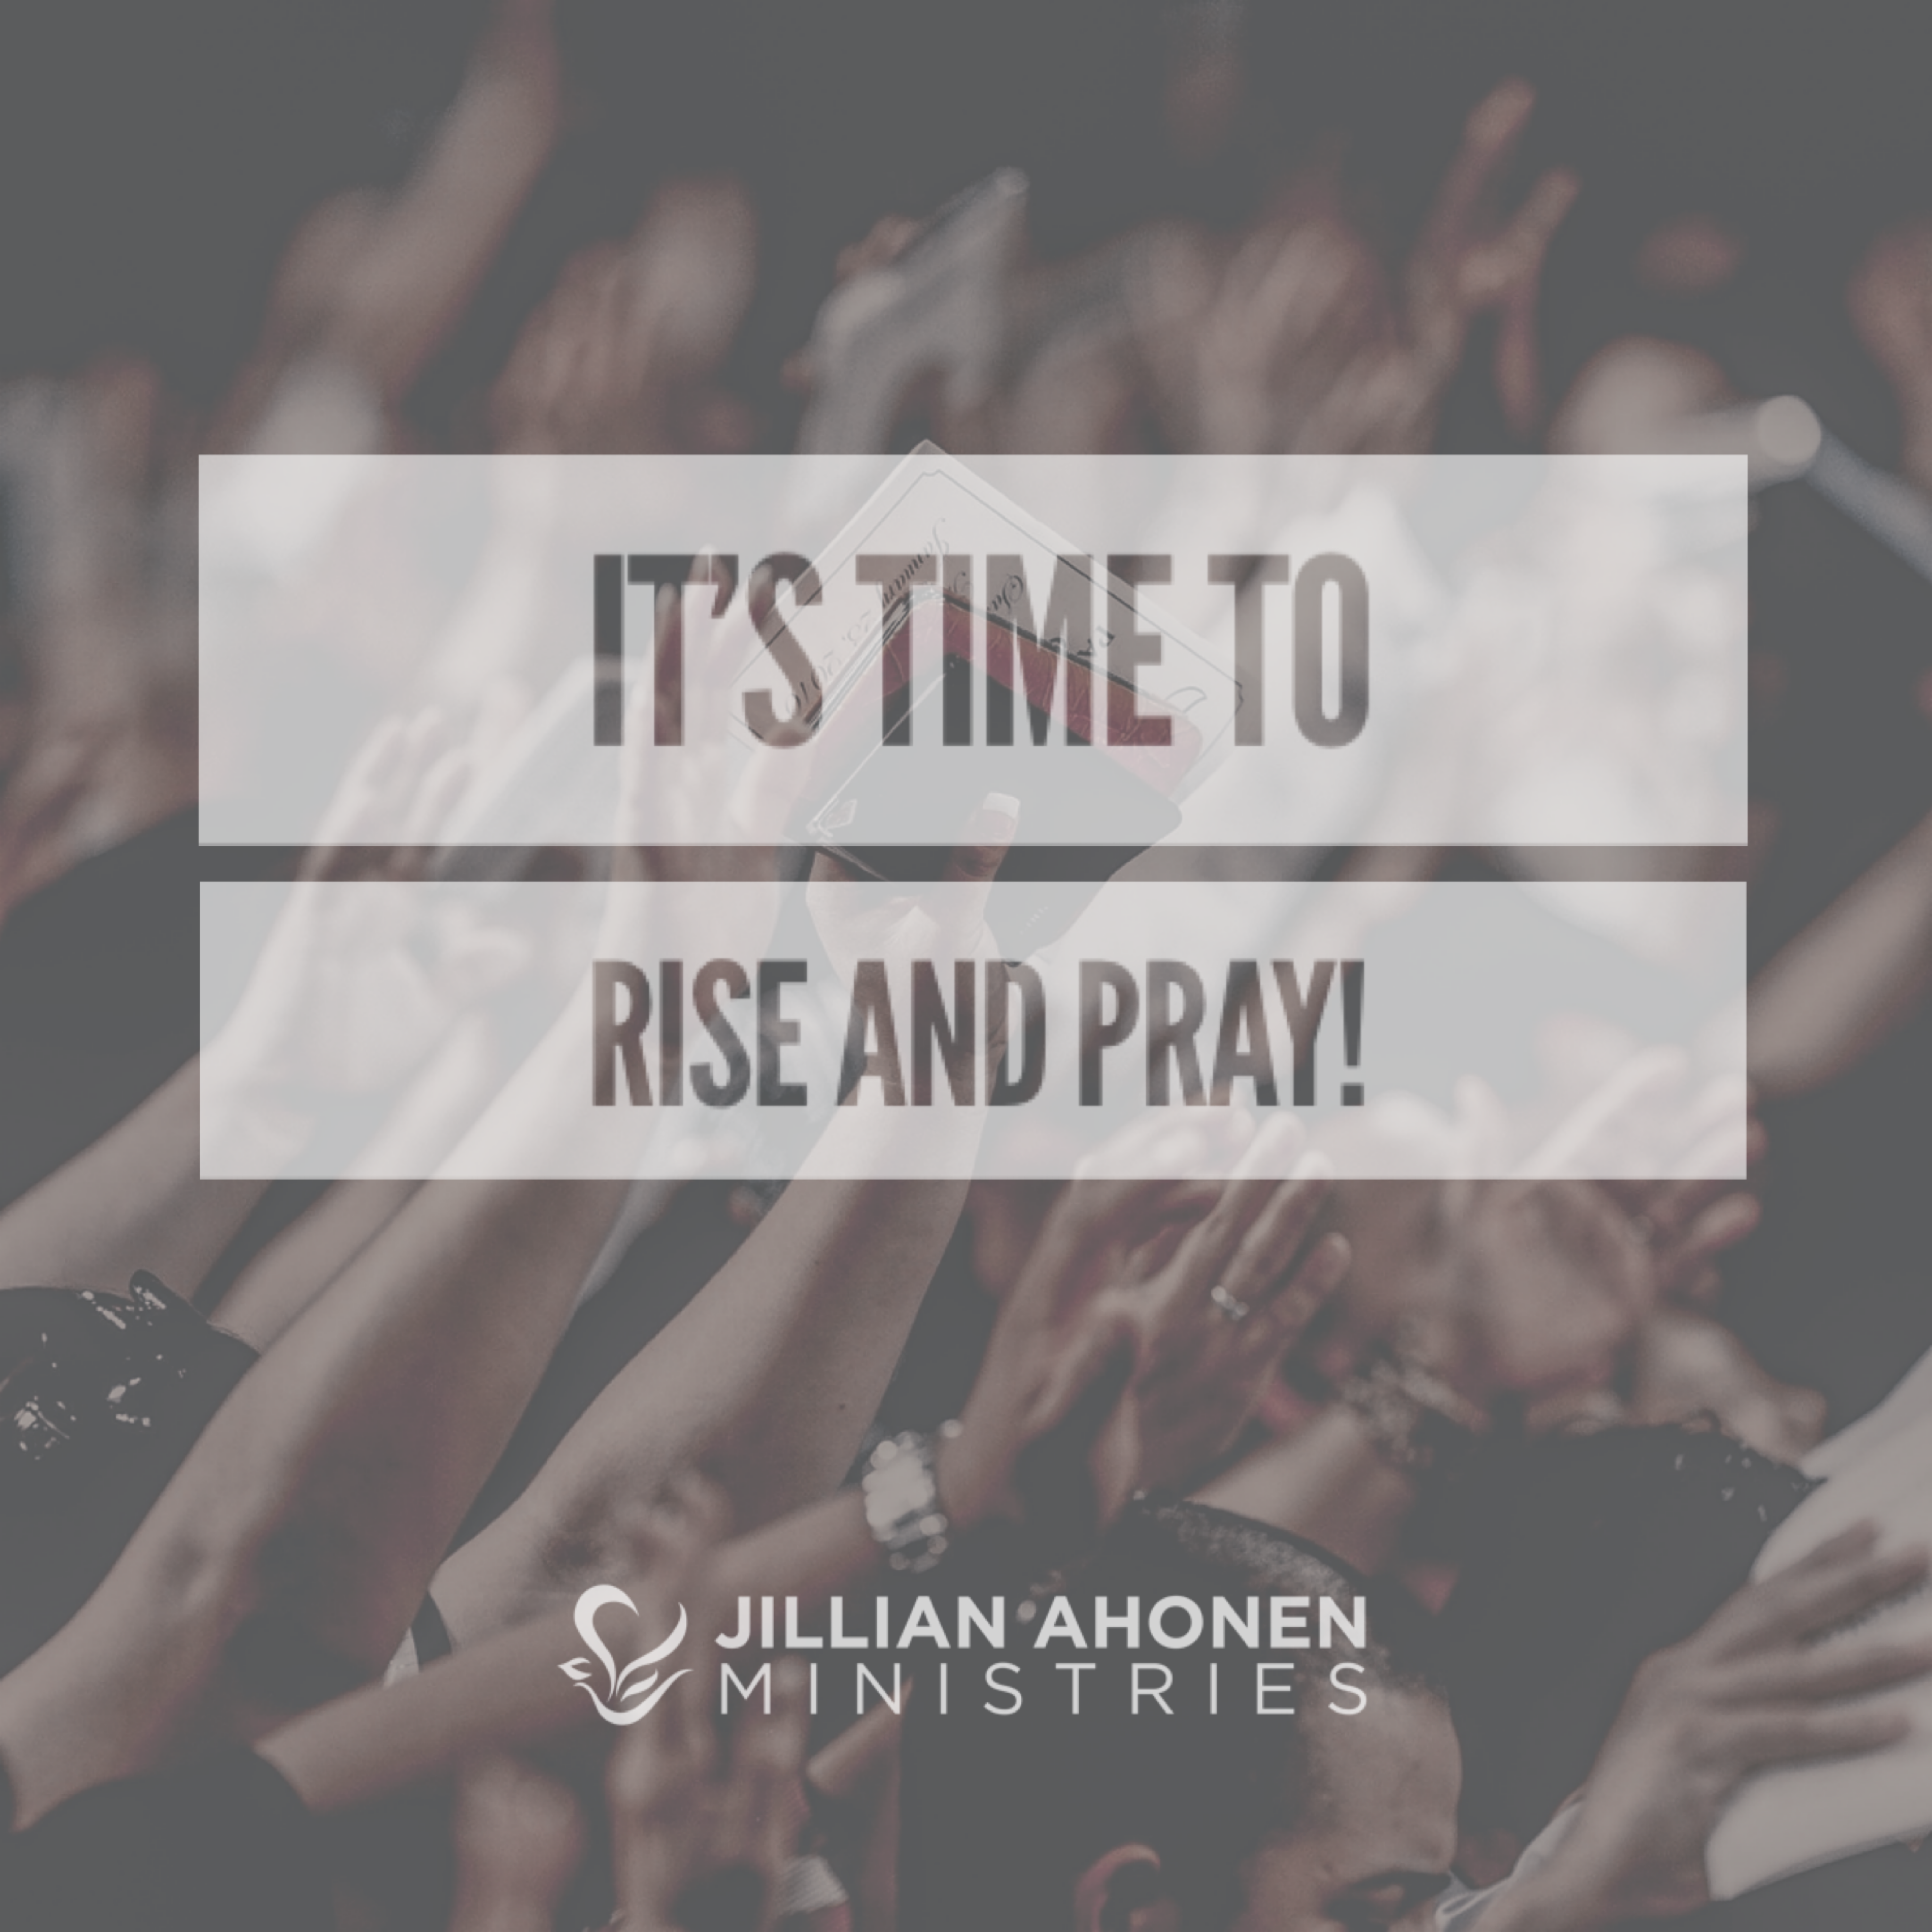 Rise and Pray!